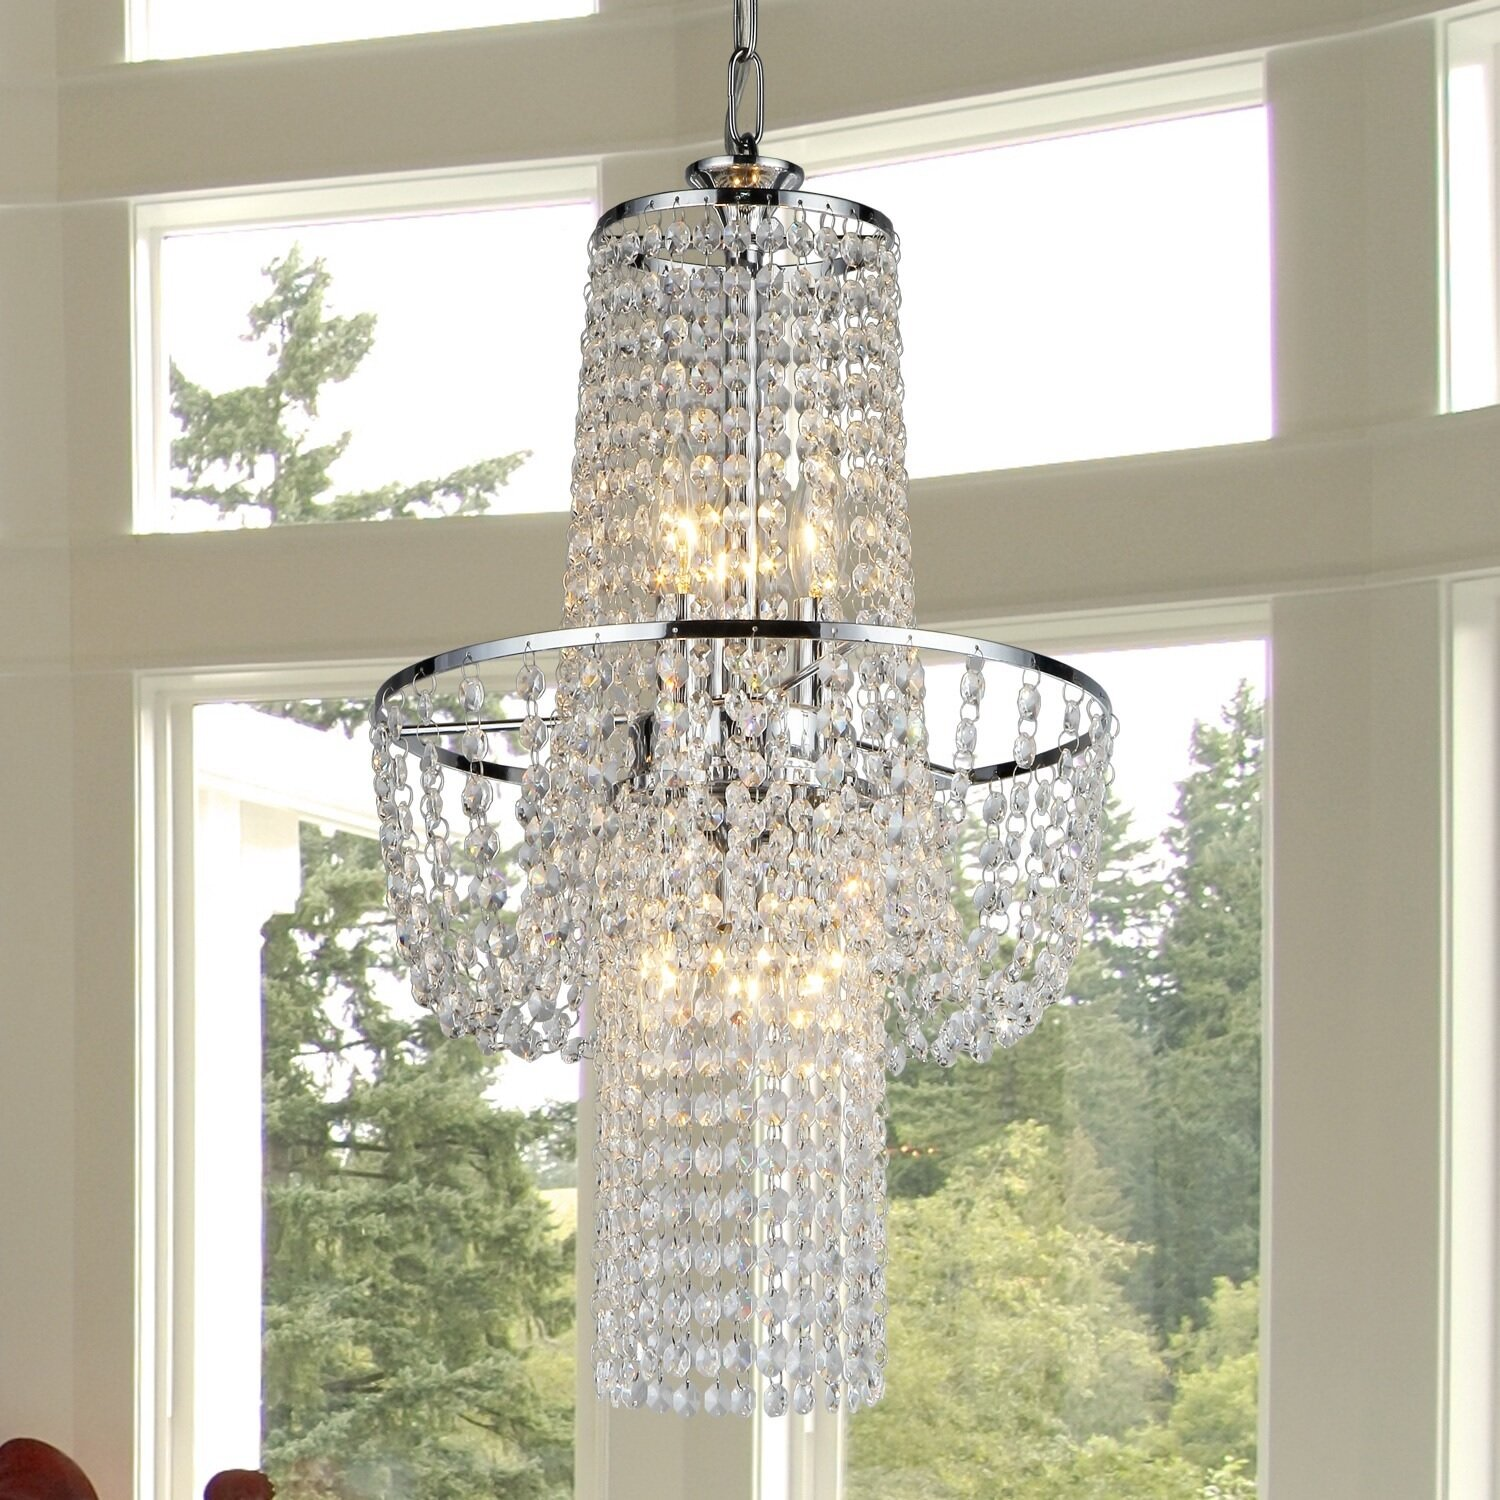 tools droplets lamp glass finish homcom new crystal modern diy chrome amazon ceiling uk co dp light pendant chandelier lighting